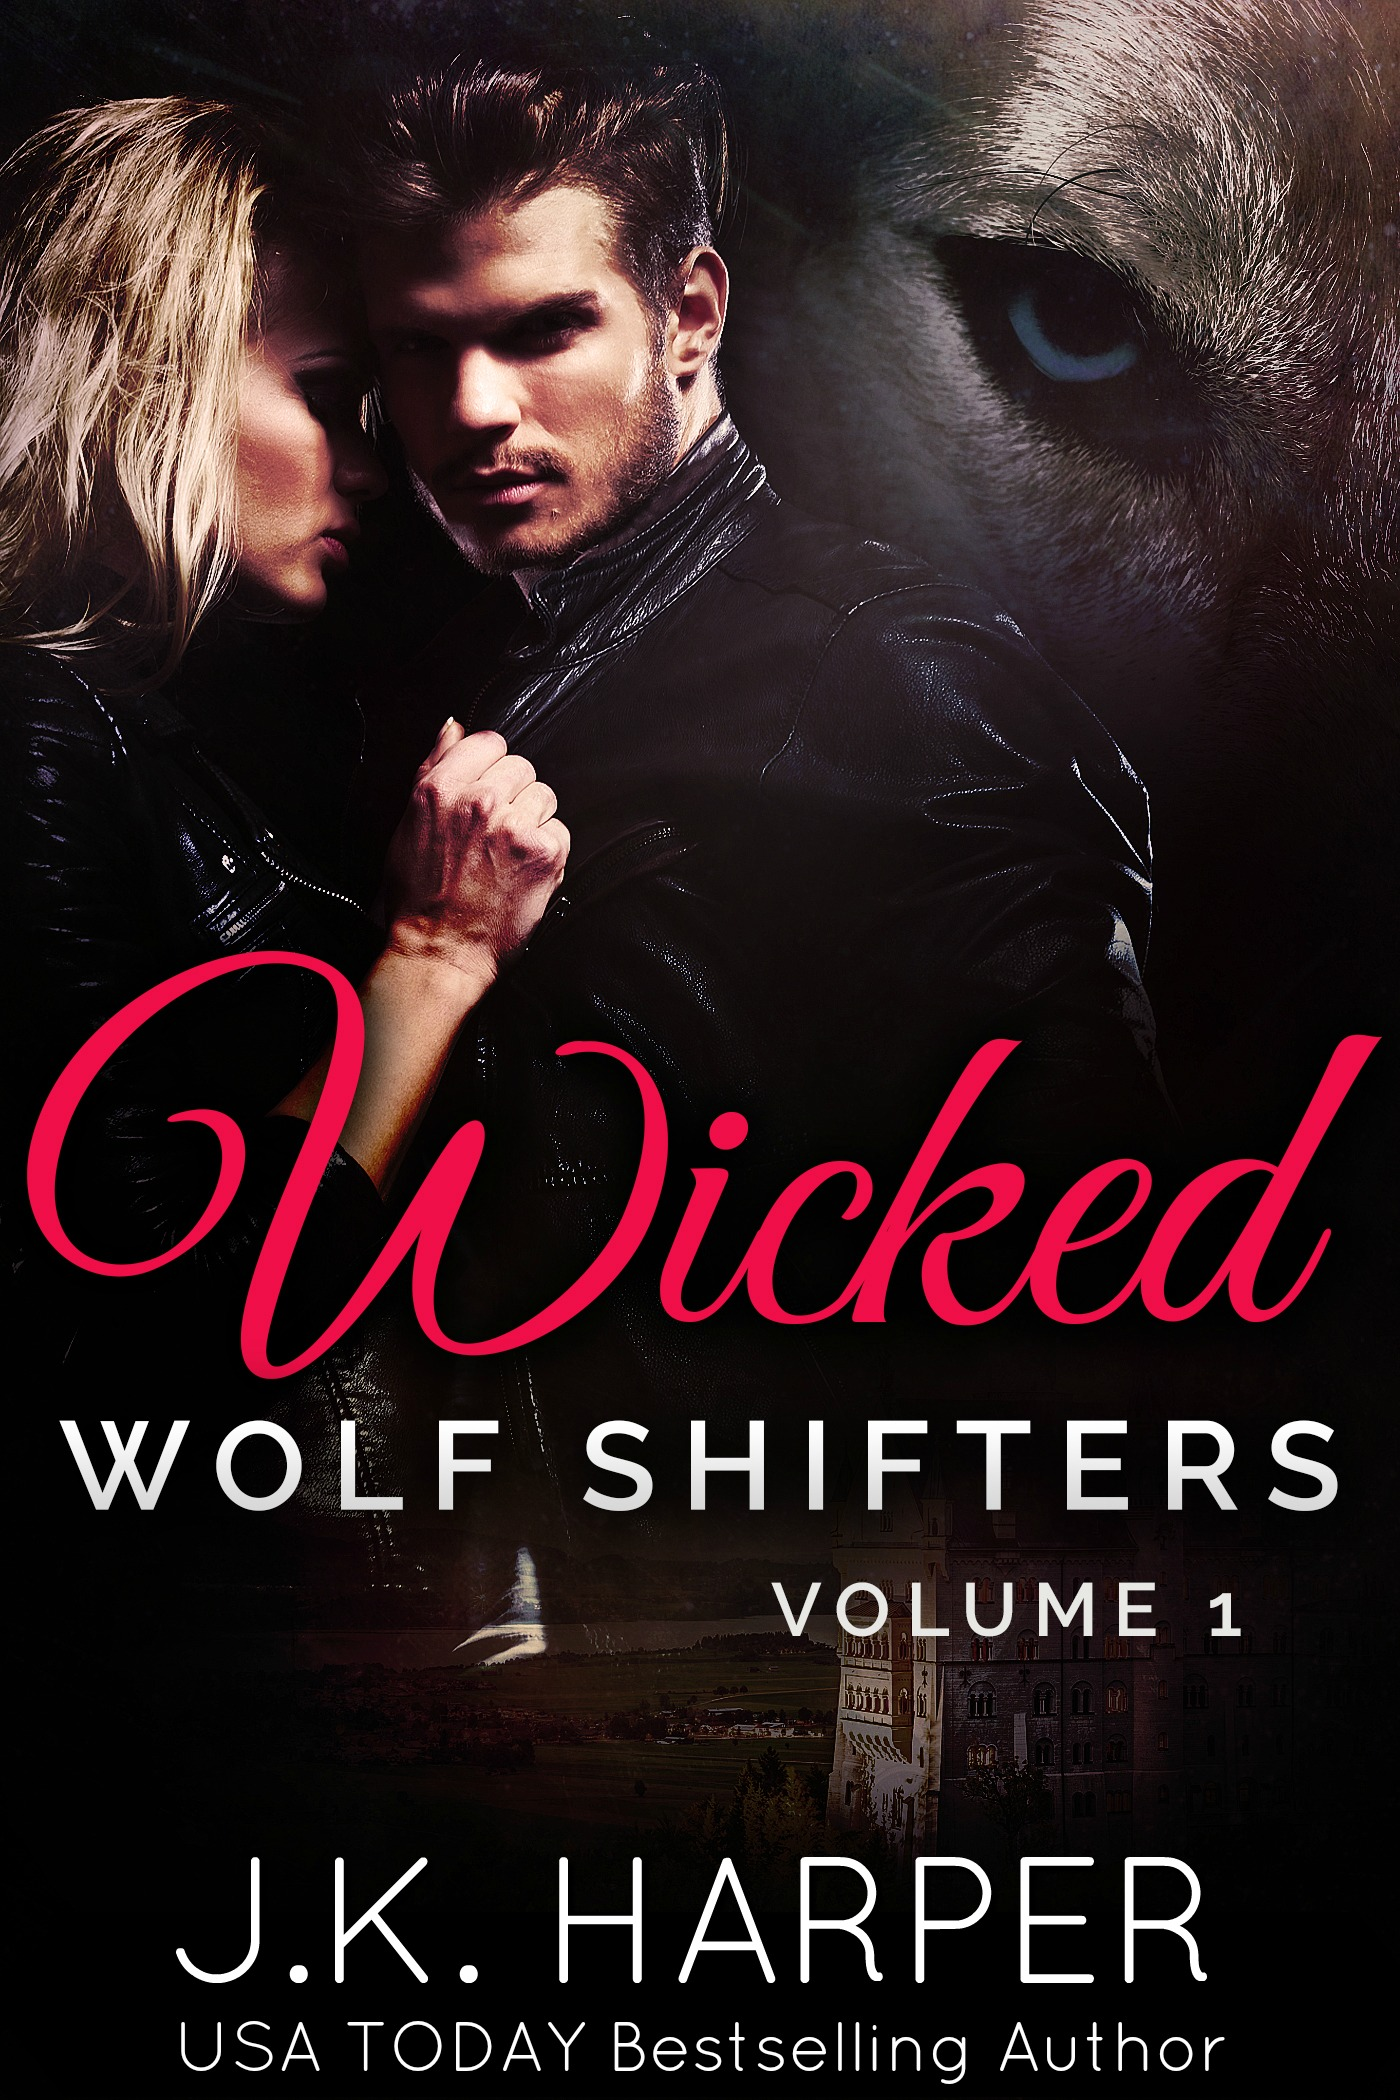 wicked-wolf-shifters-volume-1_jkharper_vb